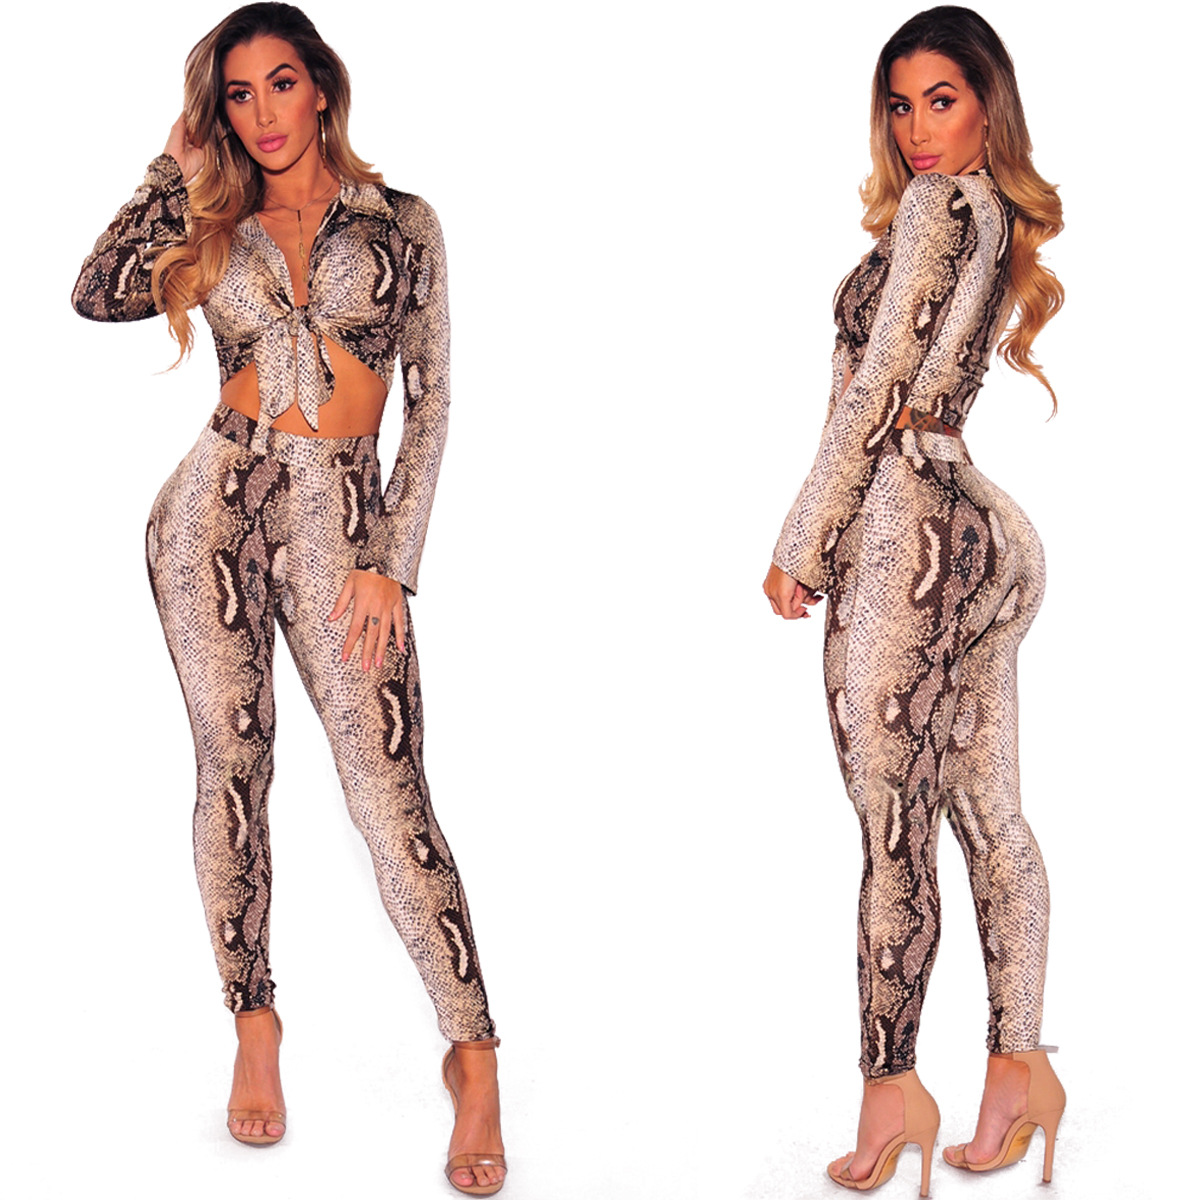 Hot Selling Sexy Python Fold-down Collar Lace-up Long-sleeved Upper Garment Slim Fit WOMEN'S Suit Currently Avai